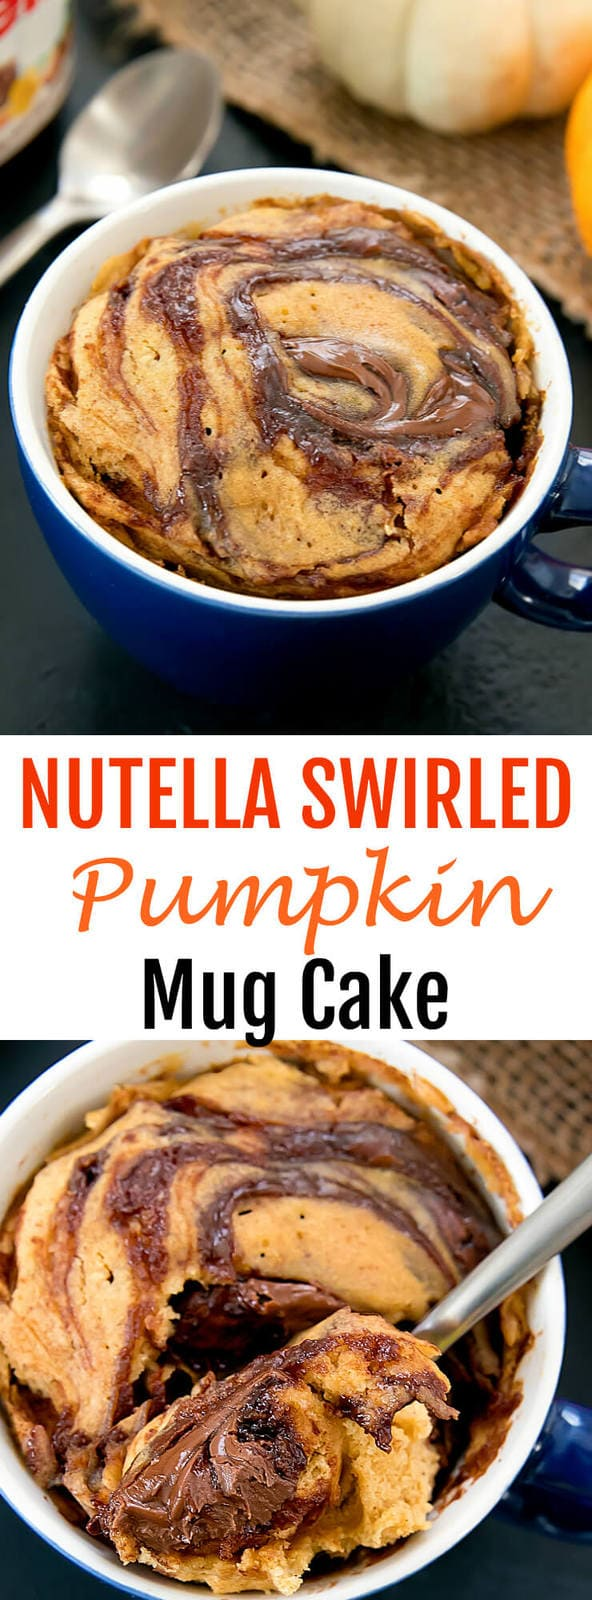 Nutella Swirled Pumpkin Mug Cake. This single serving cake is light and fluffy, full of pumpkin spices. Cooks in the microwave!